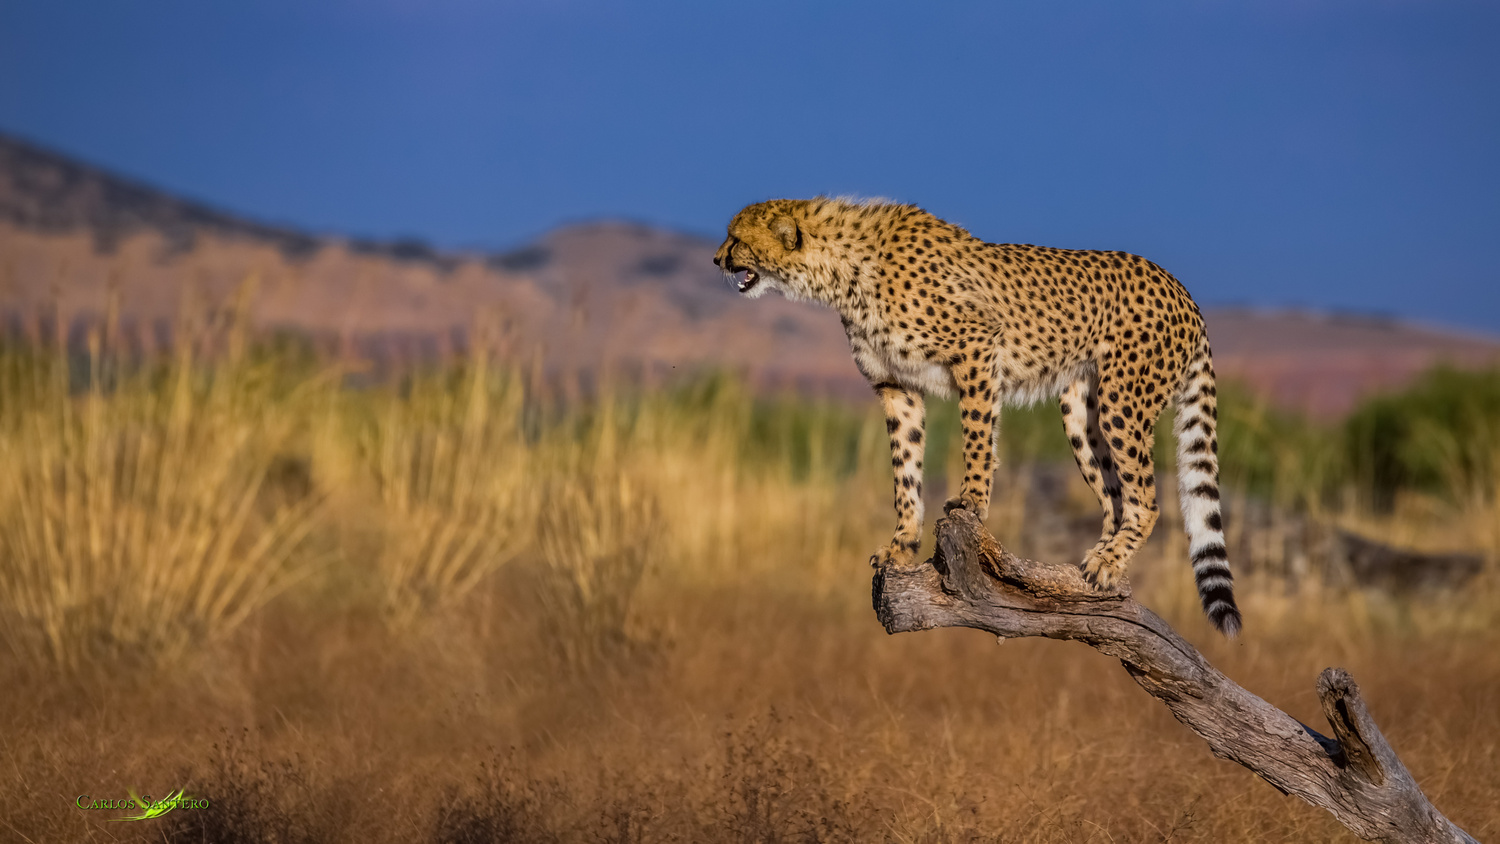 Cheetahs Viewpoint by Carlos Santero